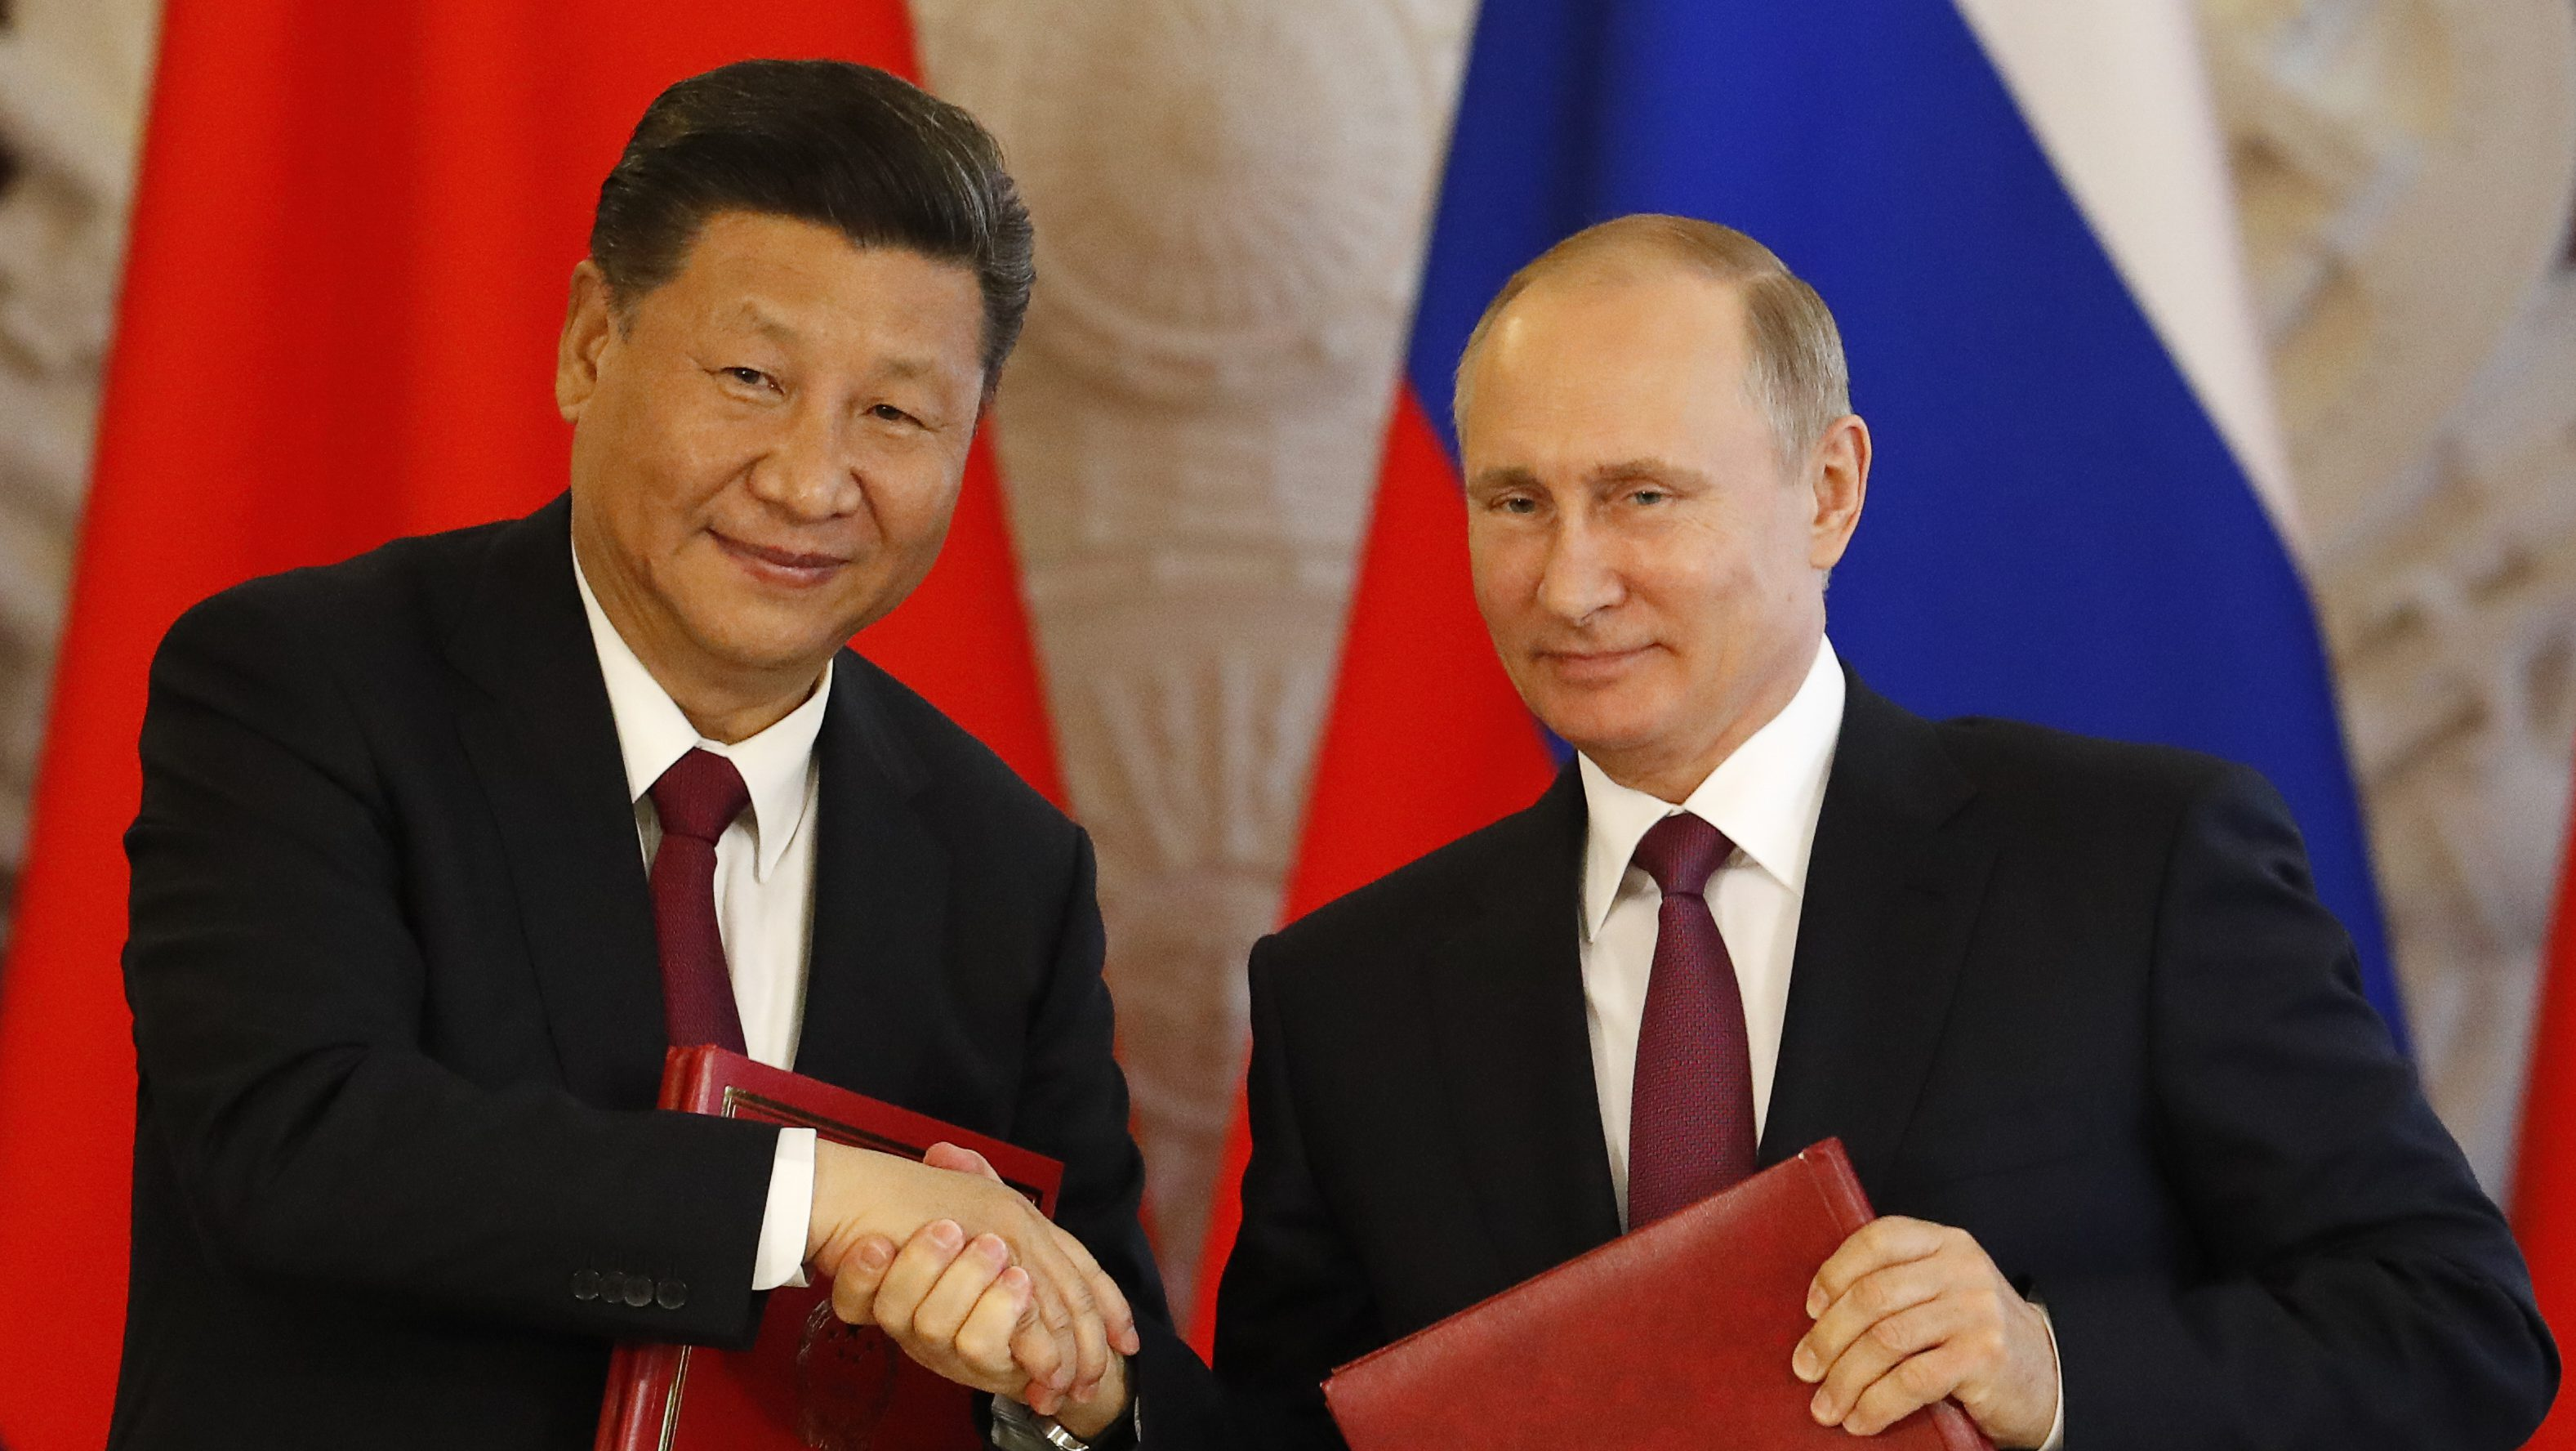 Russian President Vladimir Putin (R) shakes hands with his Chinese counterpart Xi Jinping during a signing ceremony following the talks at the Kremlin in Moscow, Russia July 4, 2017. REUTERS/Sergei Karpukhin - RTX39ZP2